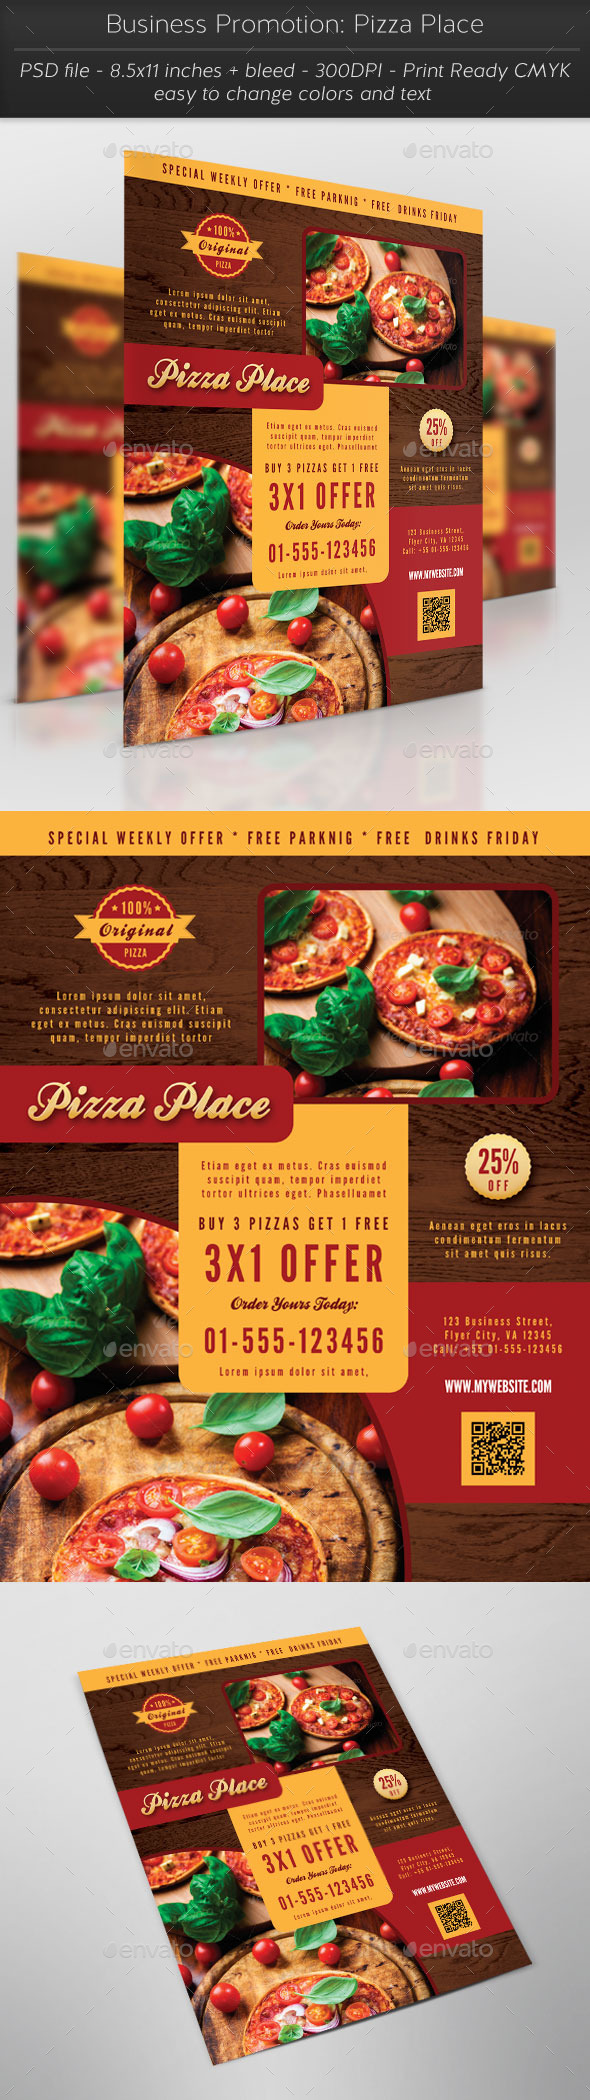 Business Promotion Pizza Place